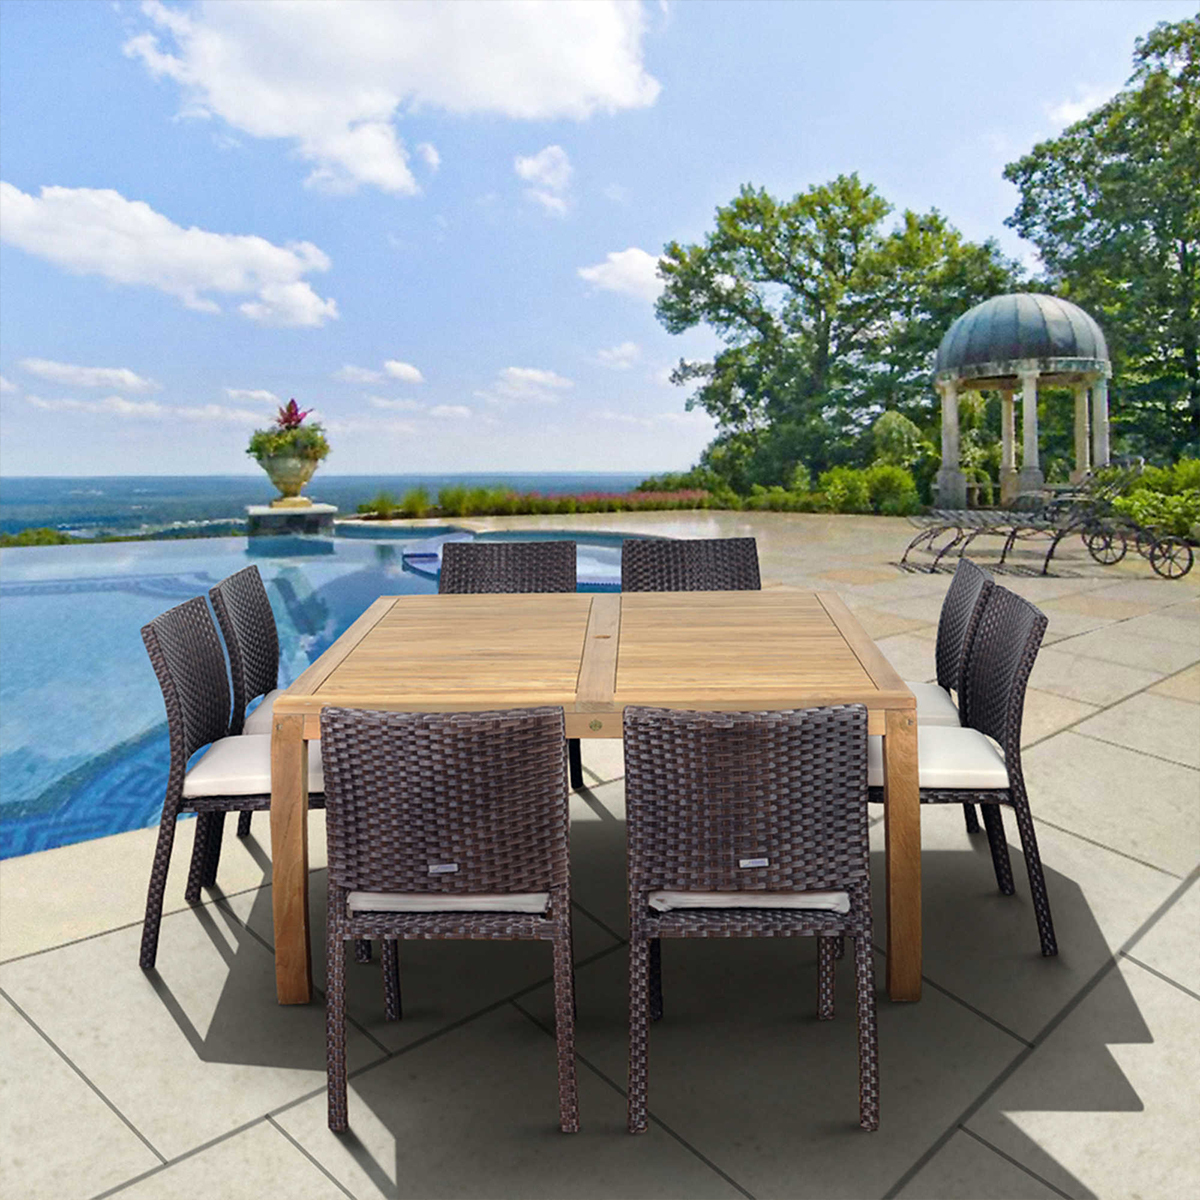 Bed Bath and Beyond eucalyptus wood and wicker patio dining set photo